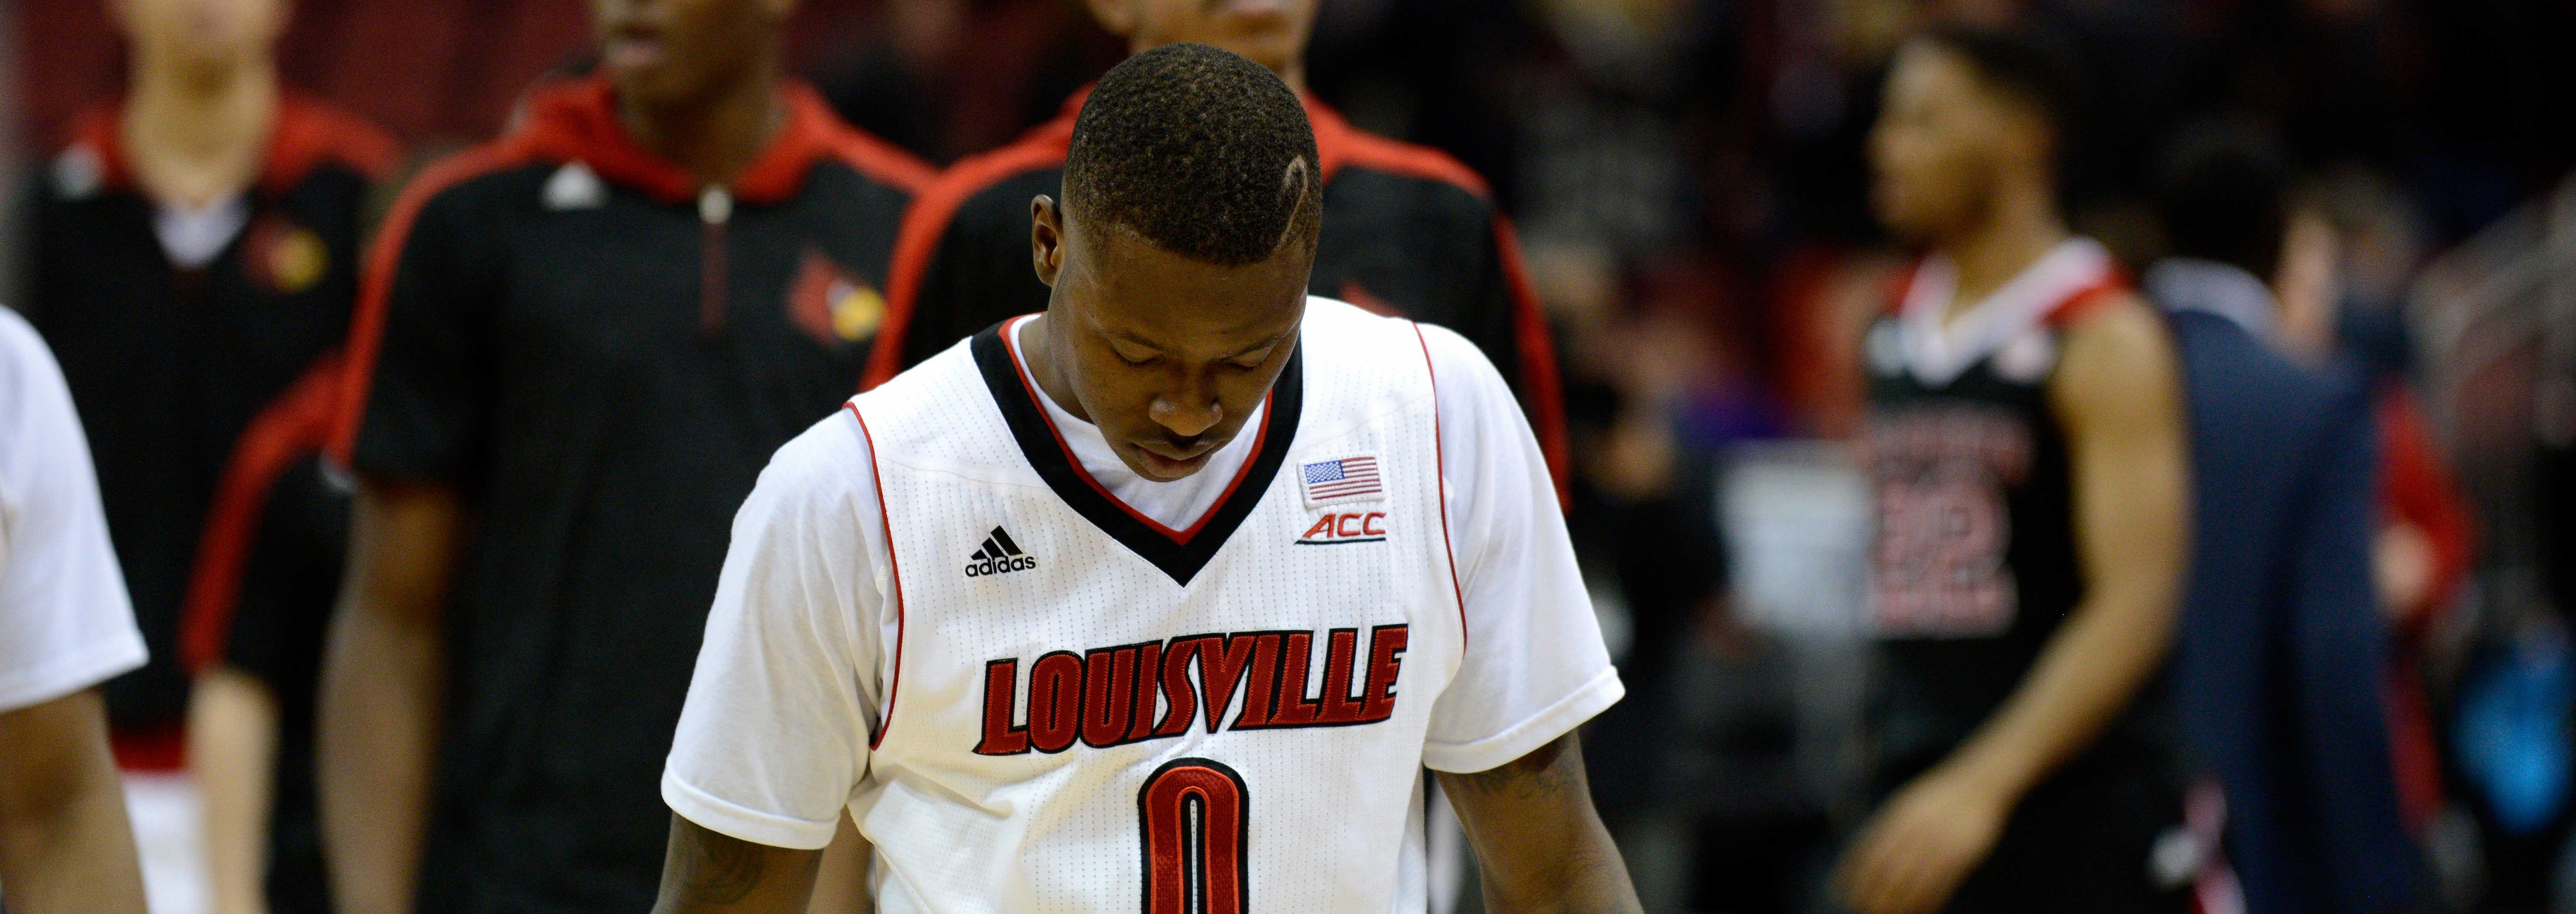 Terry Rozier Louisville vs. NC State 2-14-2015 Photo by Adam Creech Fitted